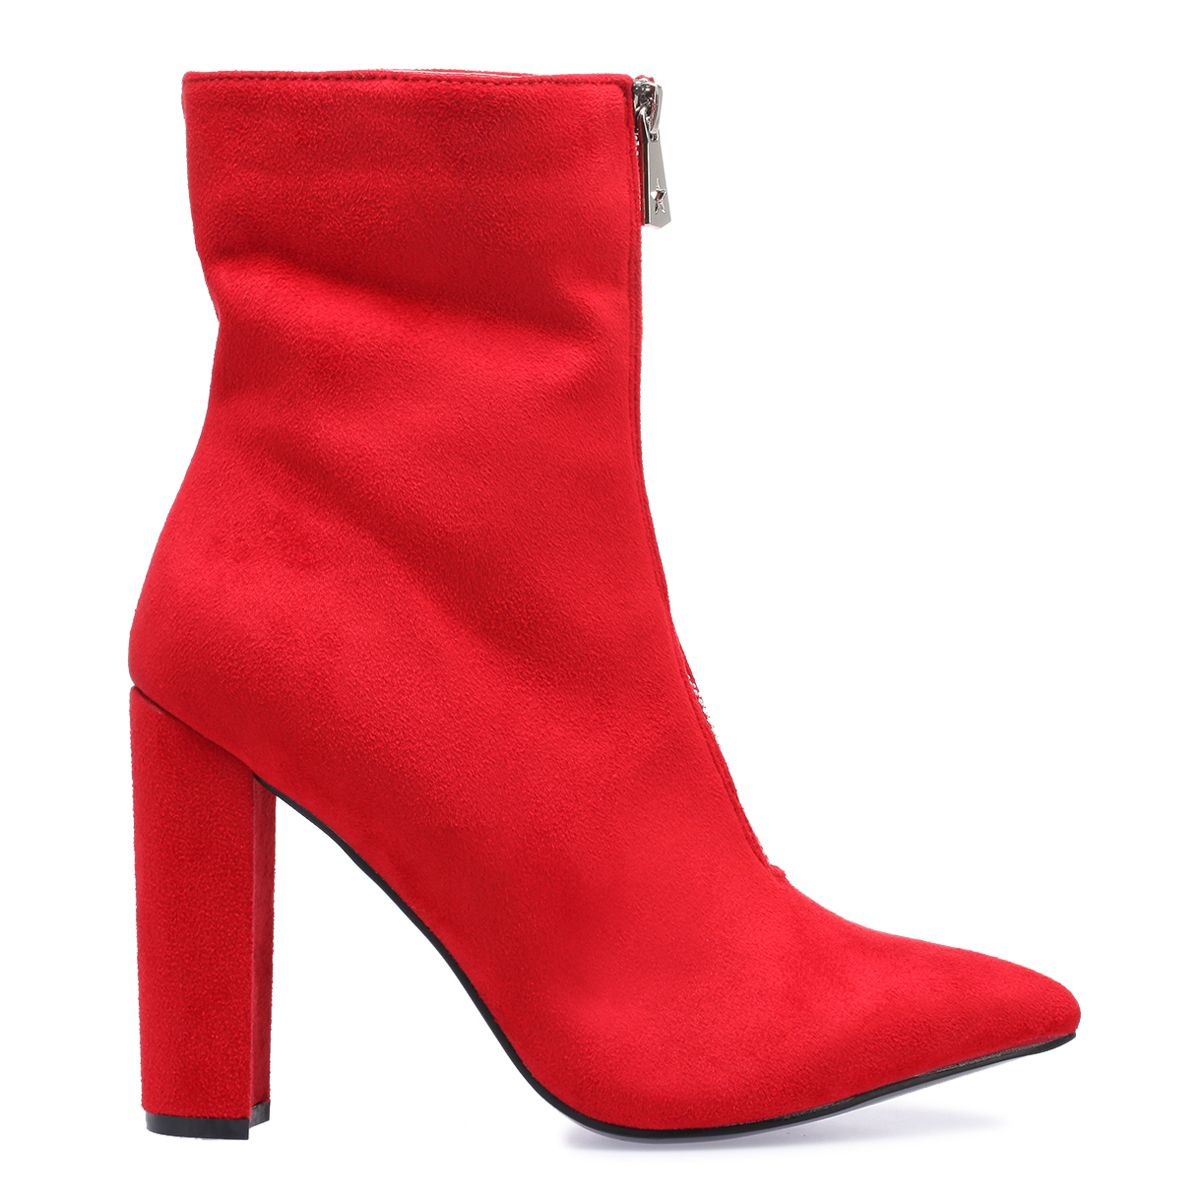 Bottines rouges à talon zippées